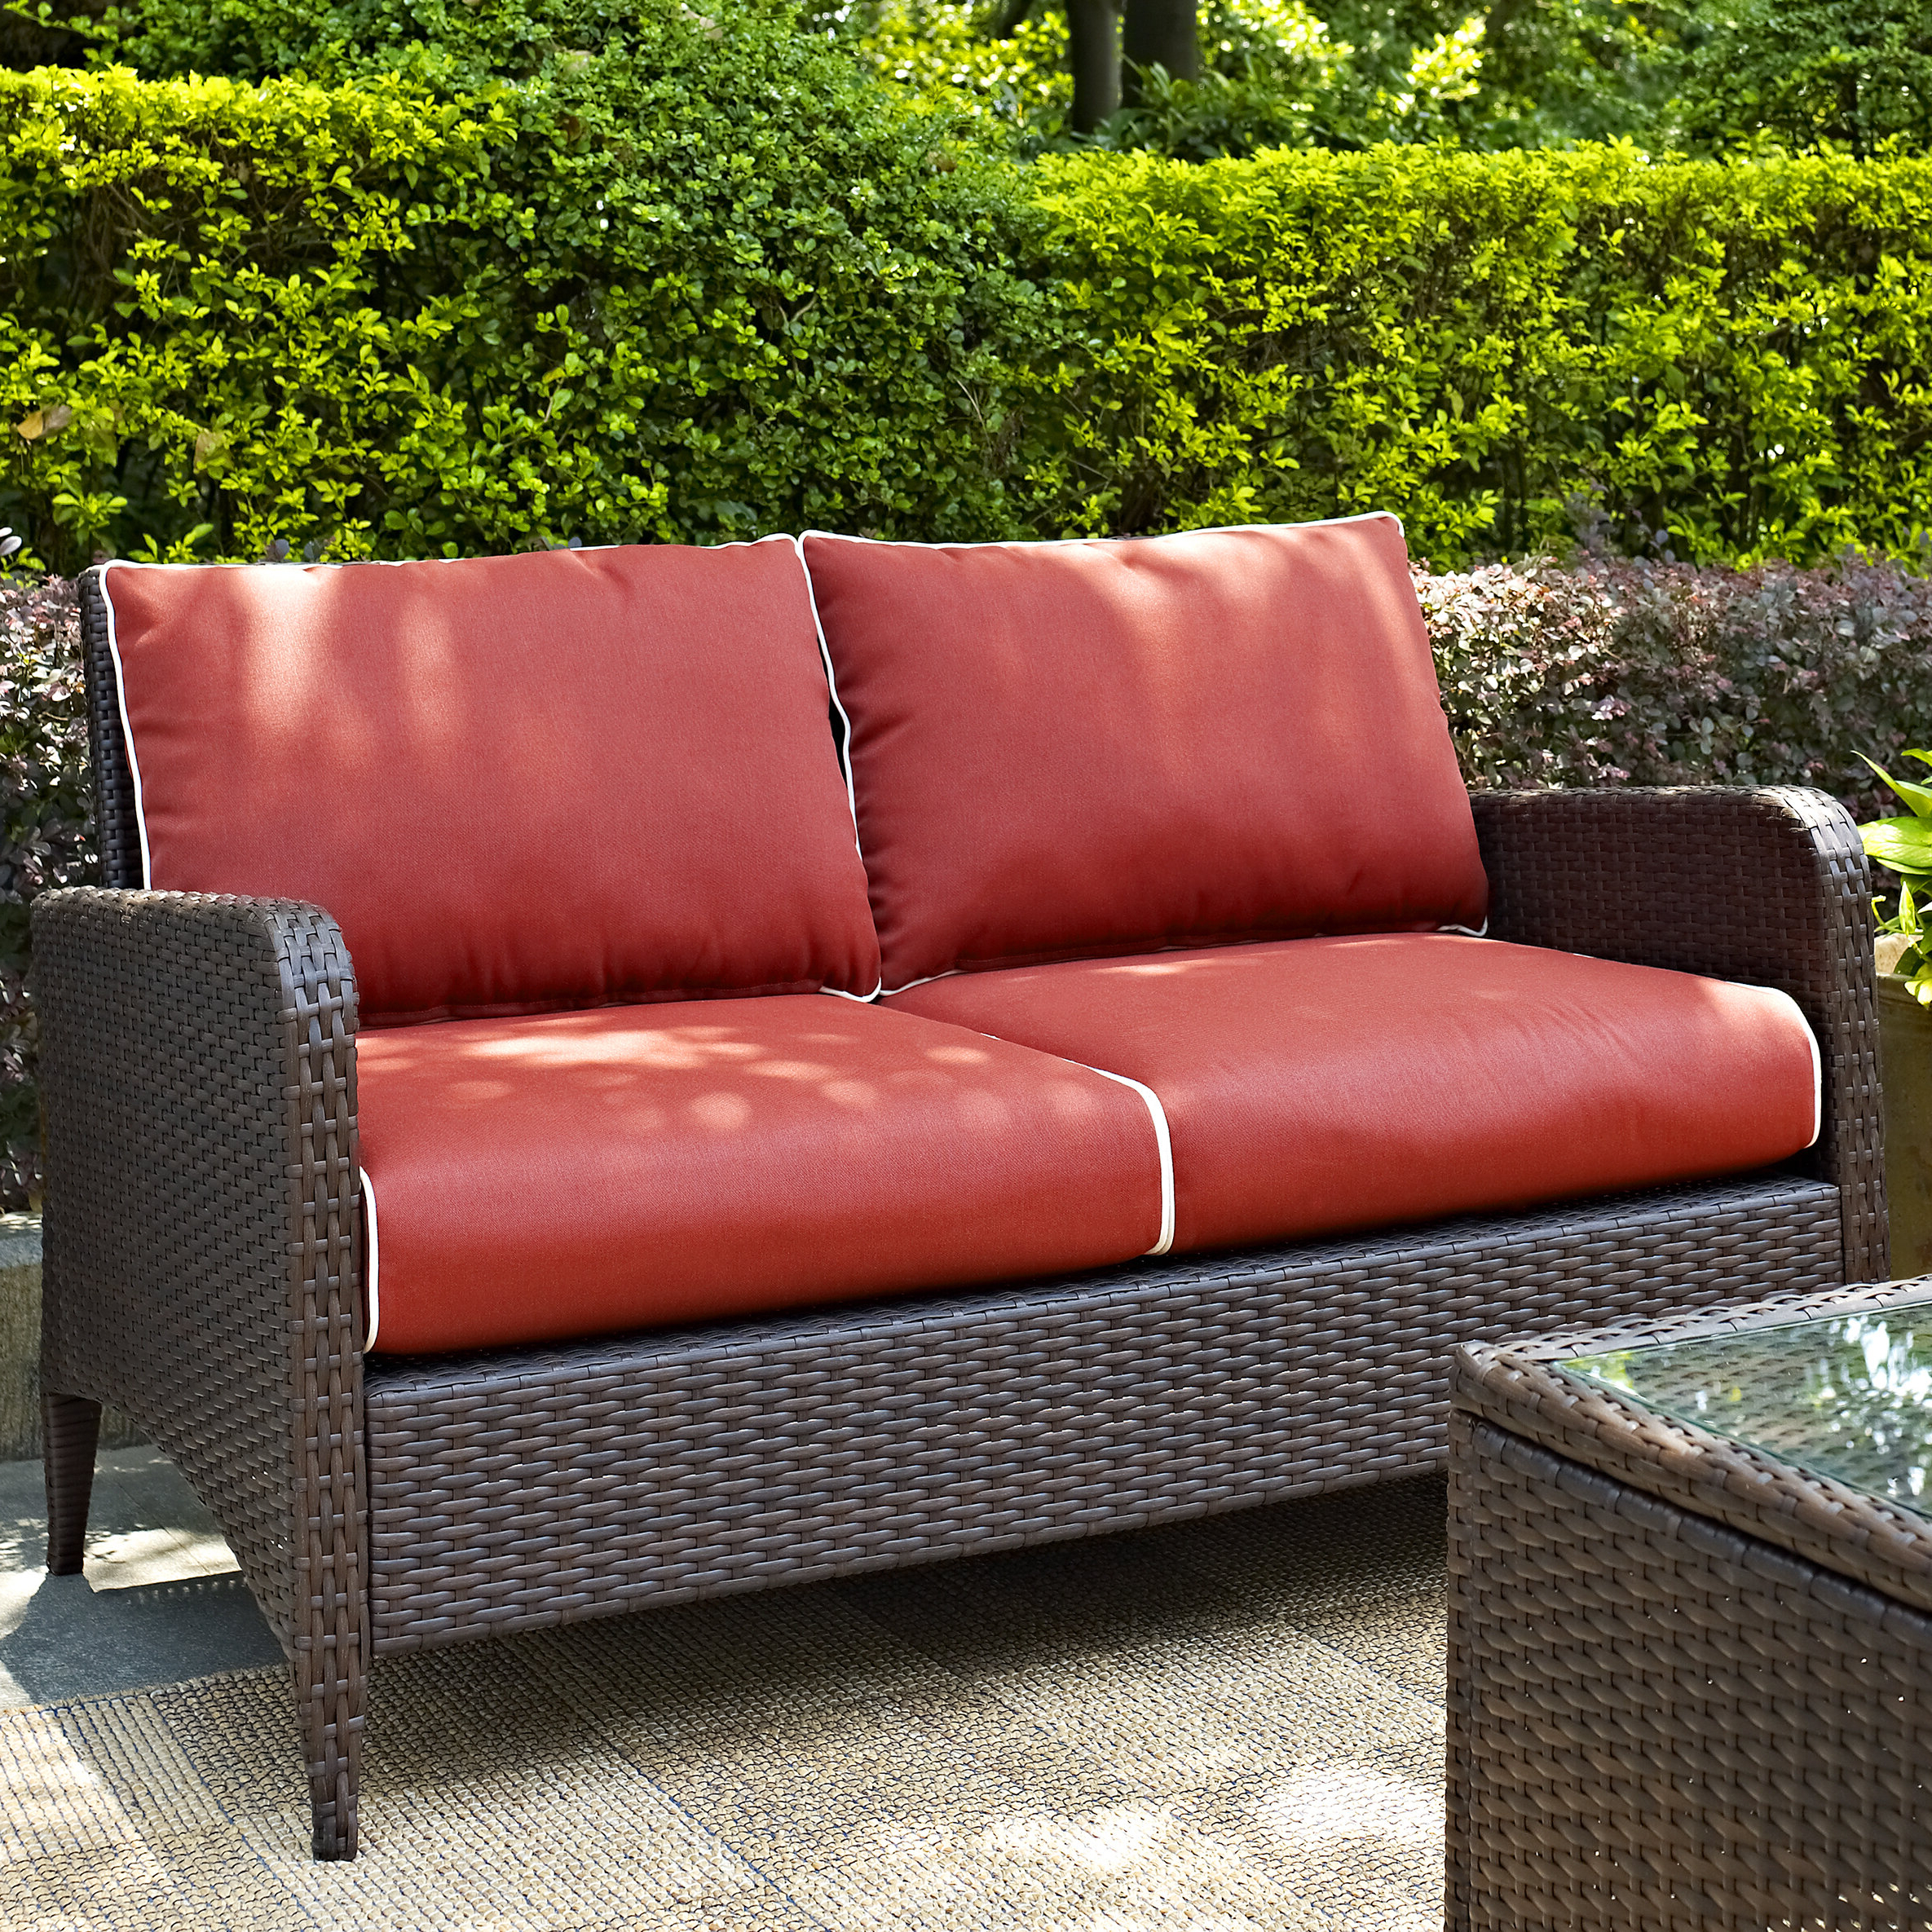 Hagler Outdoor Loveseats With Cushions Within Famous Mosca Patio Loveseat With Cushions (View 15 of 25)